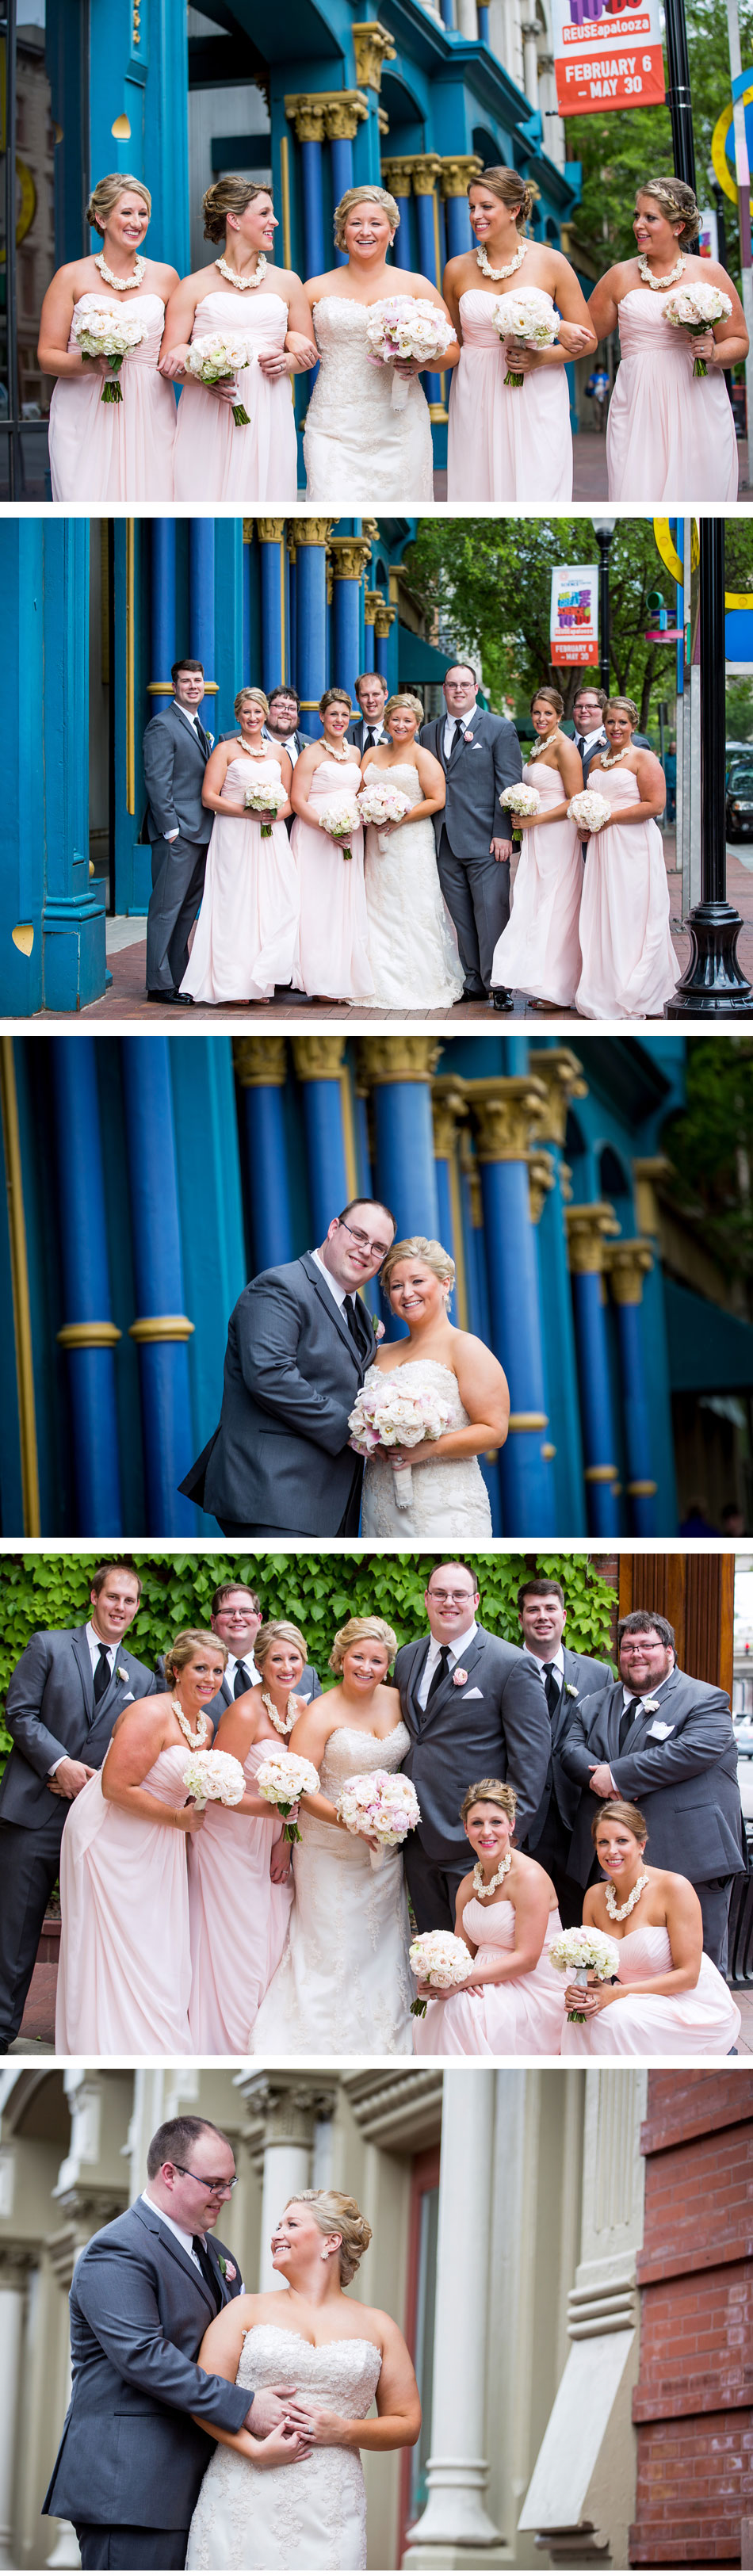 The Foundry Pictures Bridal Party